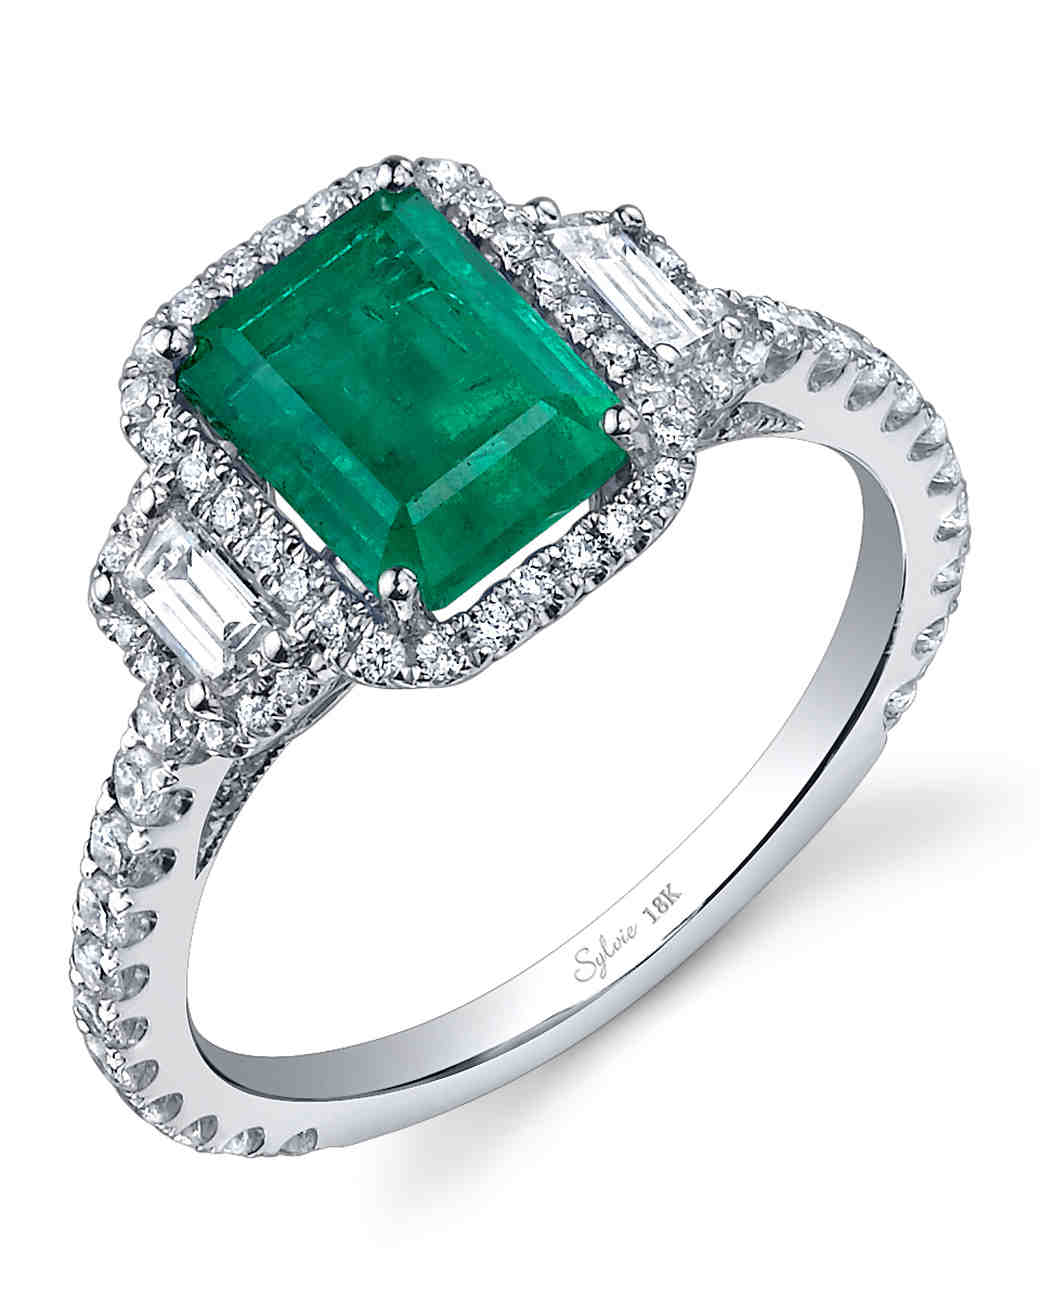 winning jewelry emerald design engraved rings ring award mark custom elite emrald schneider